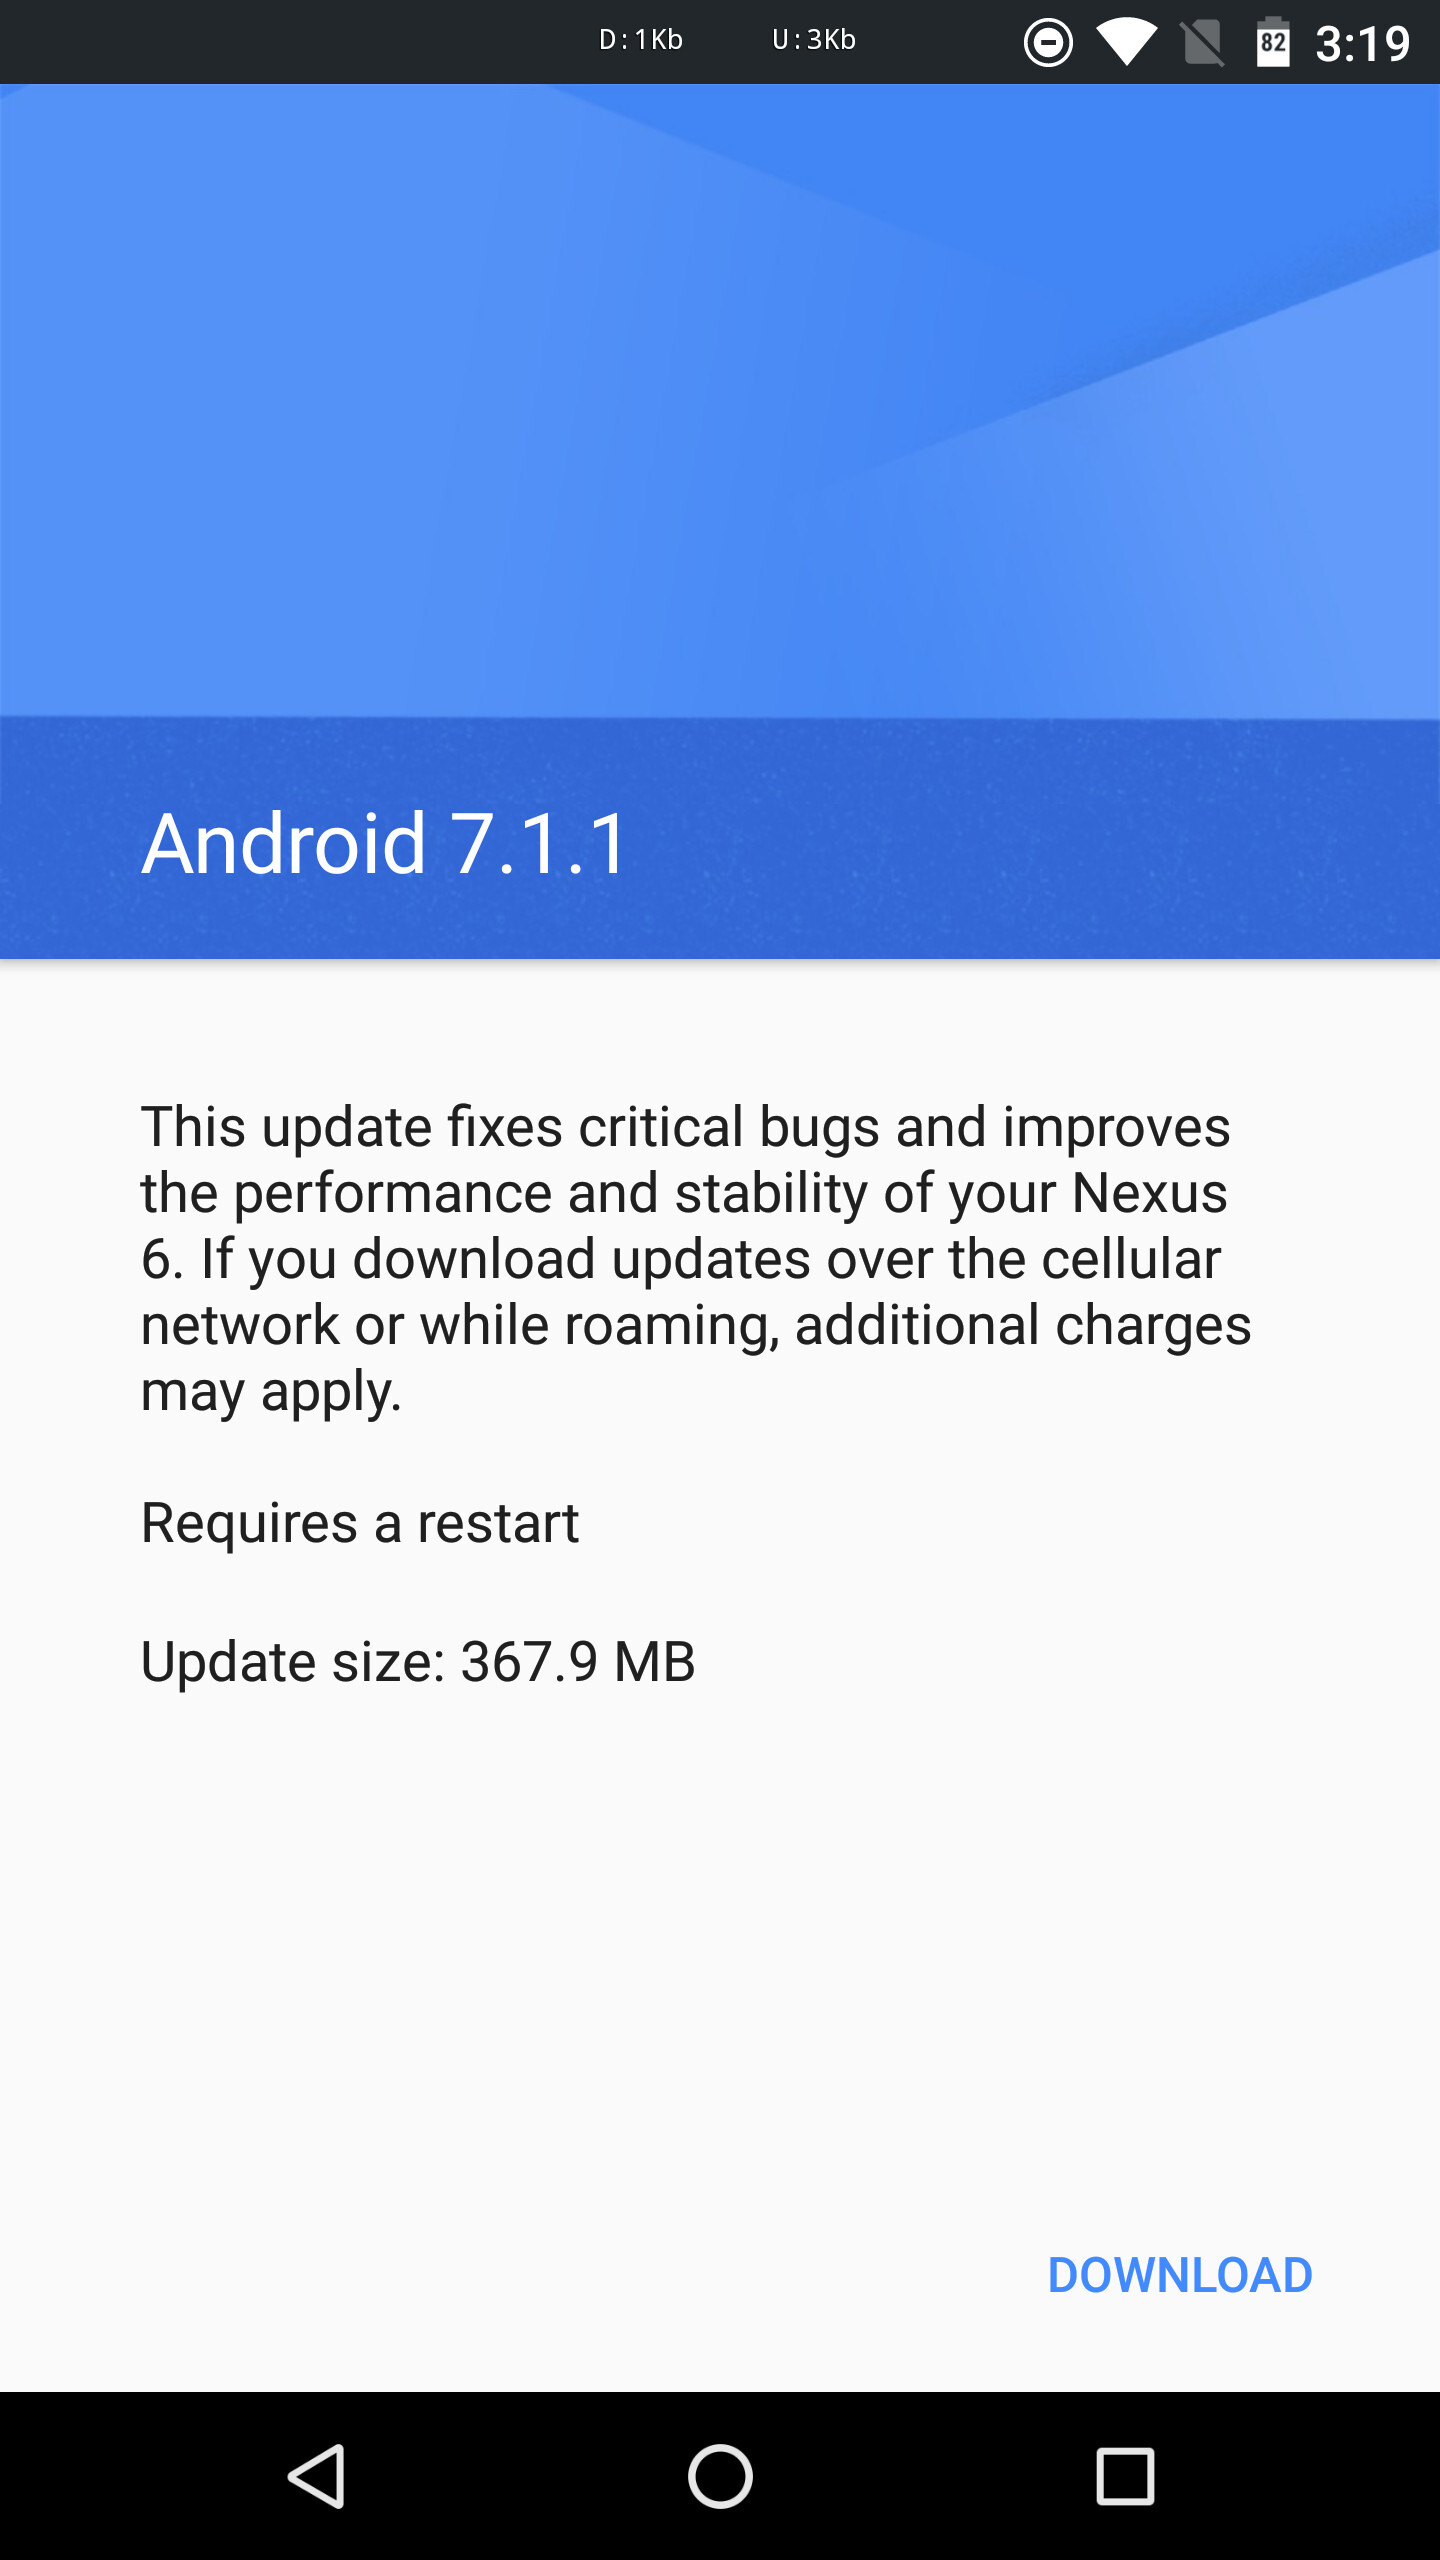 Nexus 6 is getting Android 7.1.1 Nougat update once again - PhoneArena